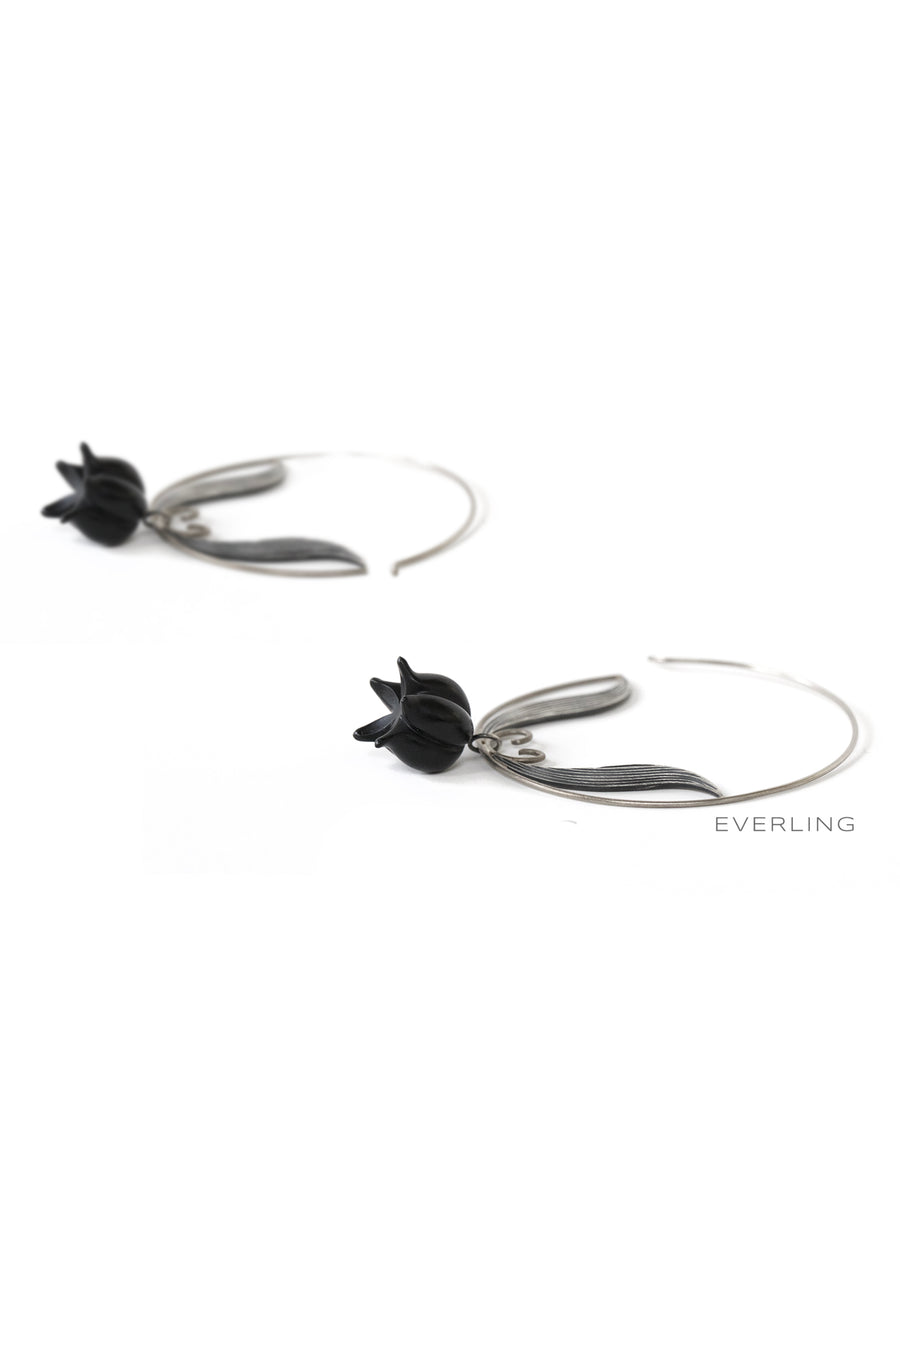 Detail- Recycled 14K Palladium White Gold and Sterling Silver Hoop earrings with Carved Onyx beads. #hoopearrings #organicjewelry www.everlingjewelry.com